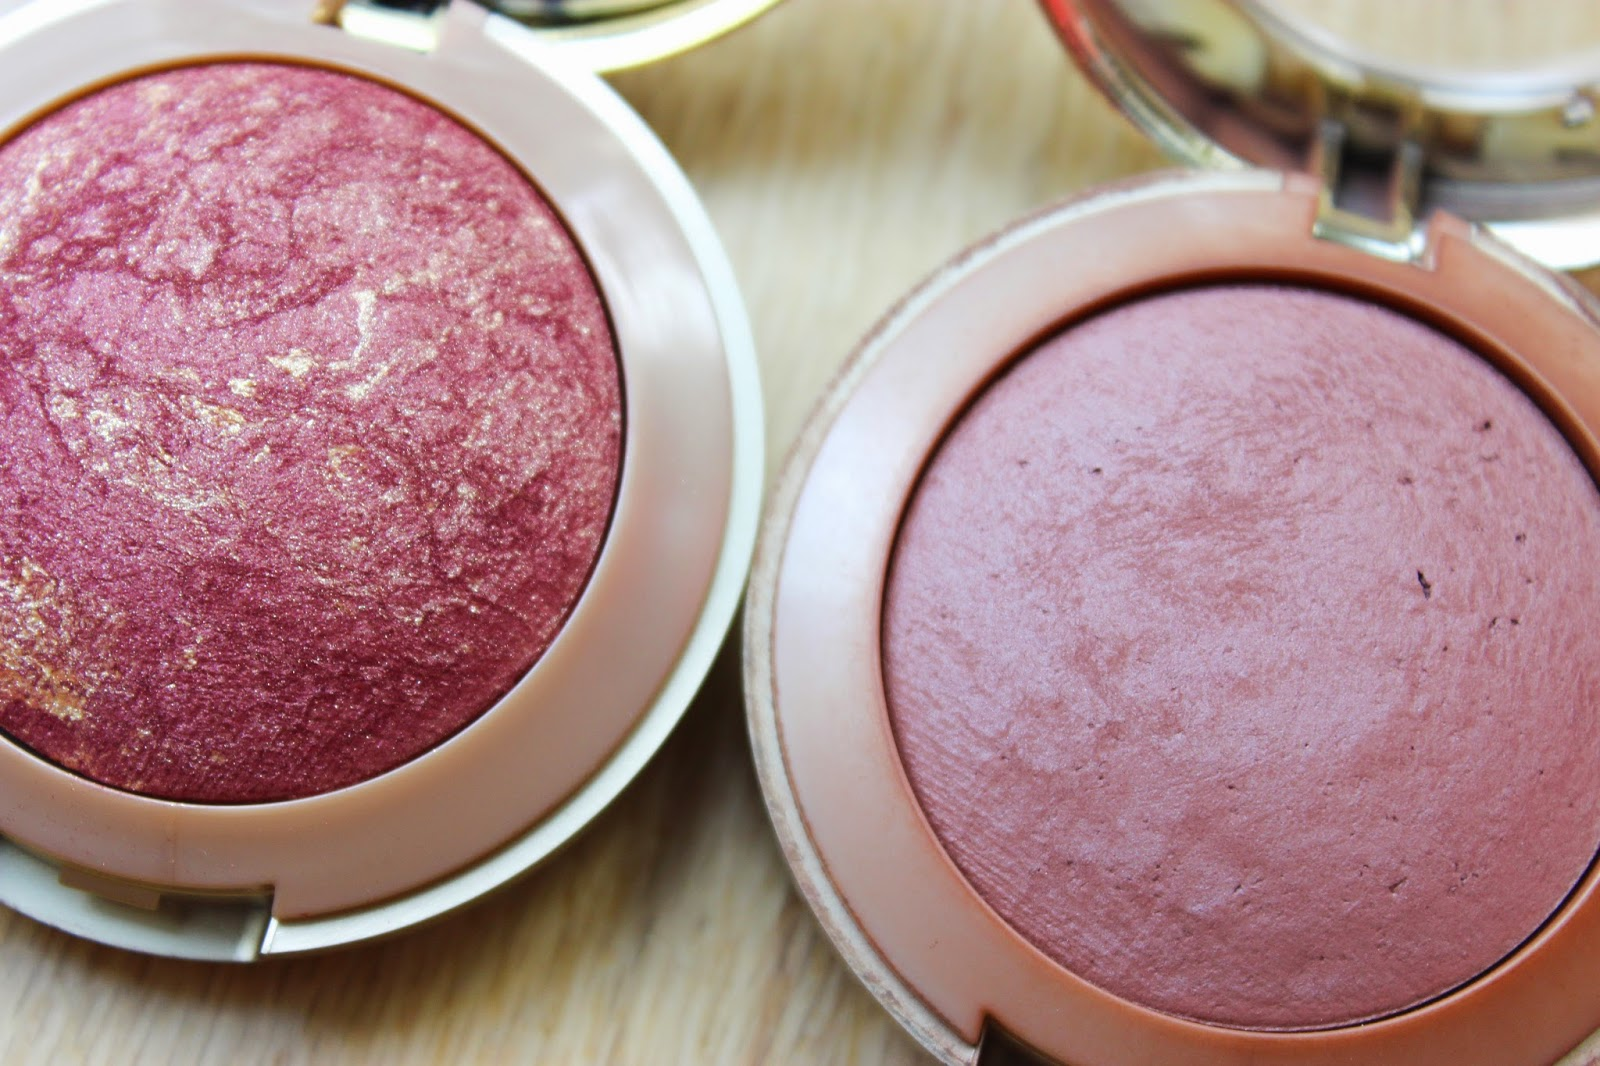 Milani Baked Blush Terra Sole Red Vino Swatches Discoveries Of Self Blog